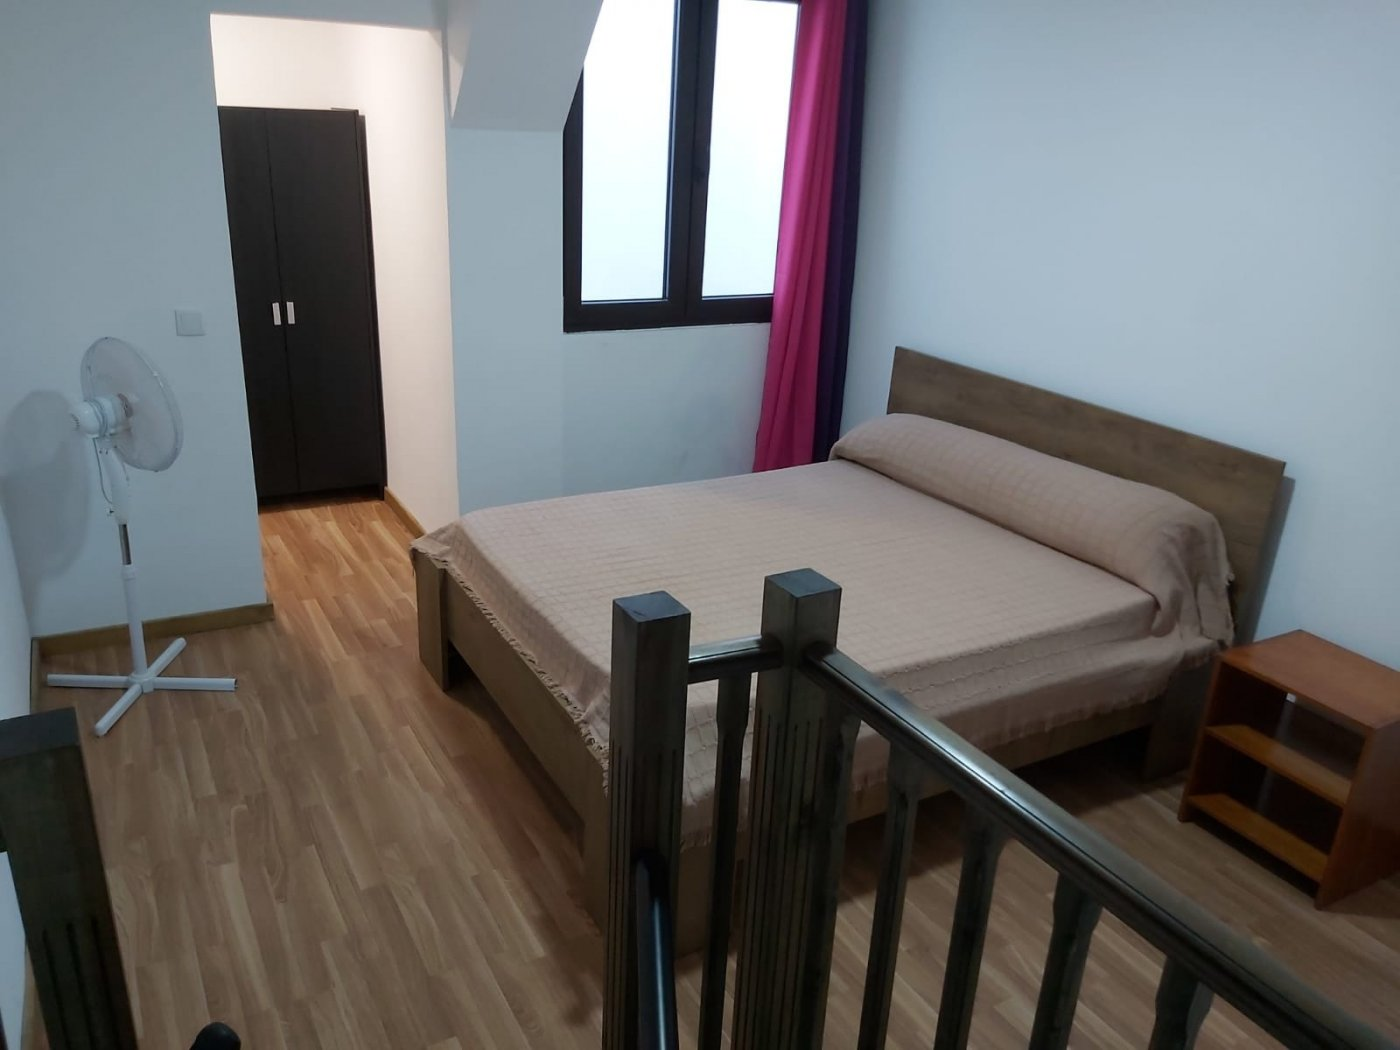 duplex en alicante · plaza-de-toros---mercado-central 500€